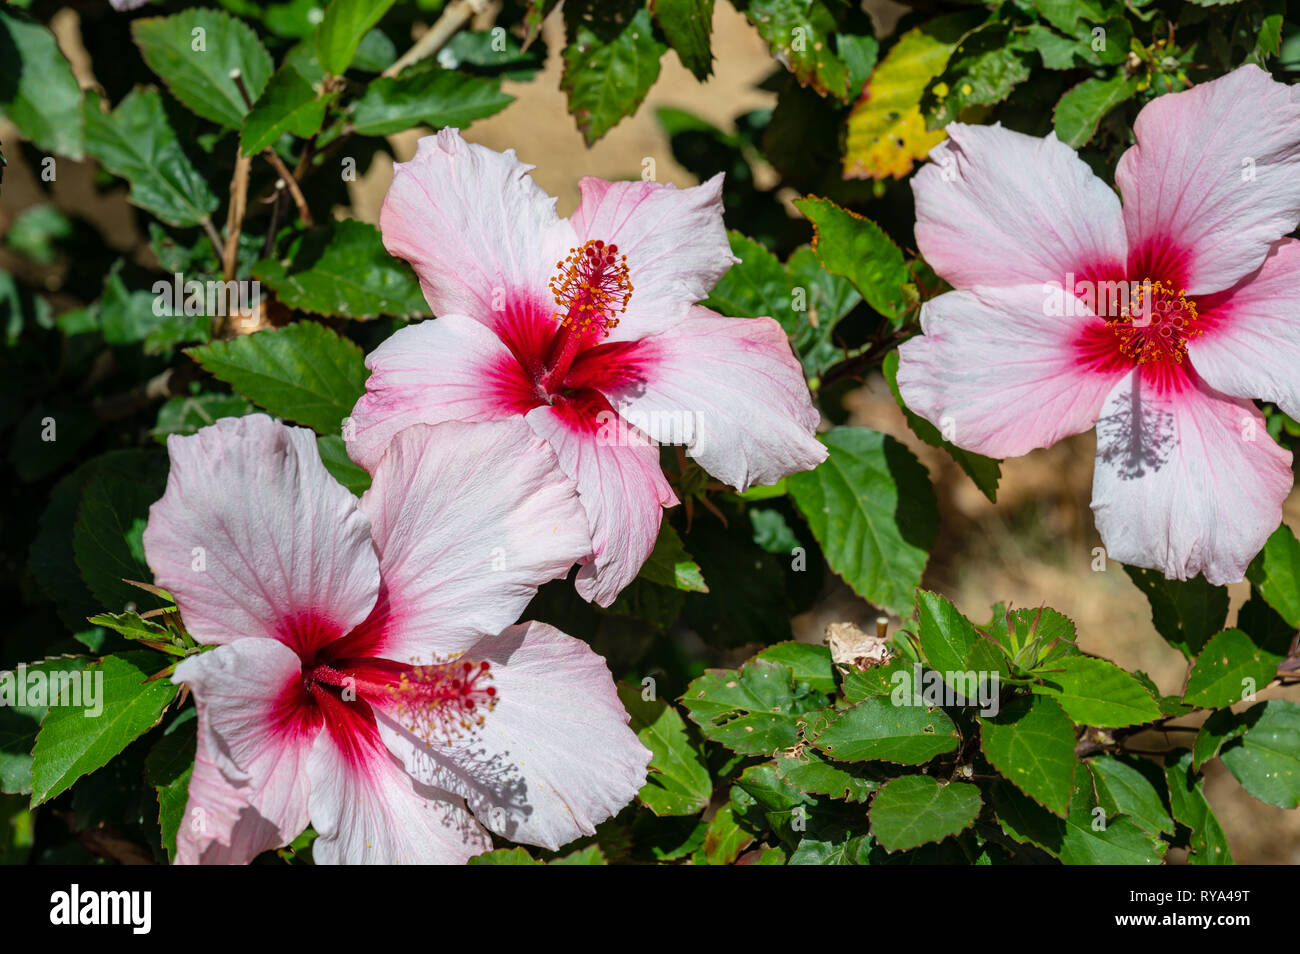 hibiscus flower on a shrub Stock Photo